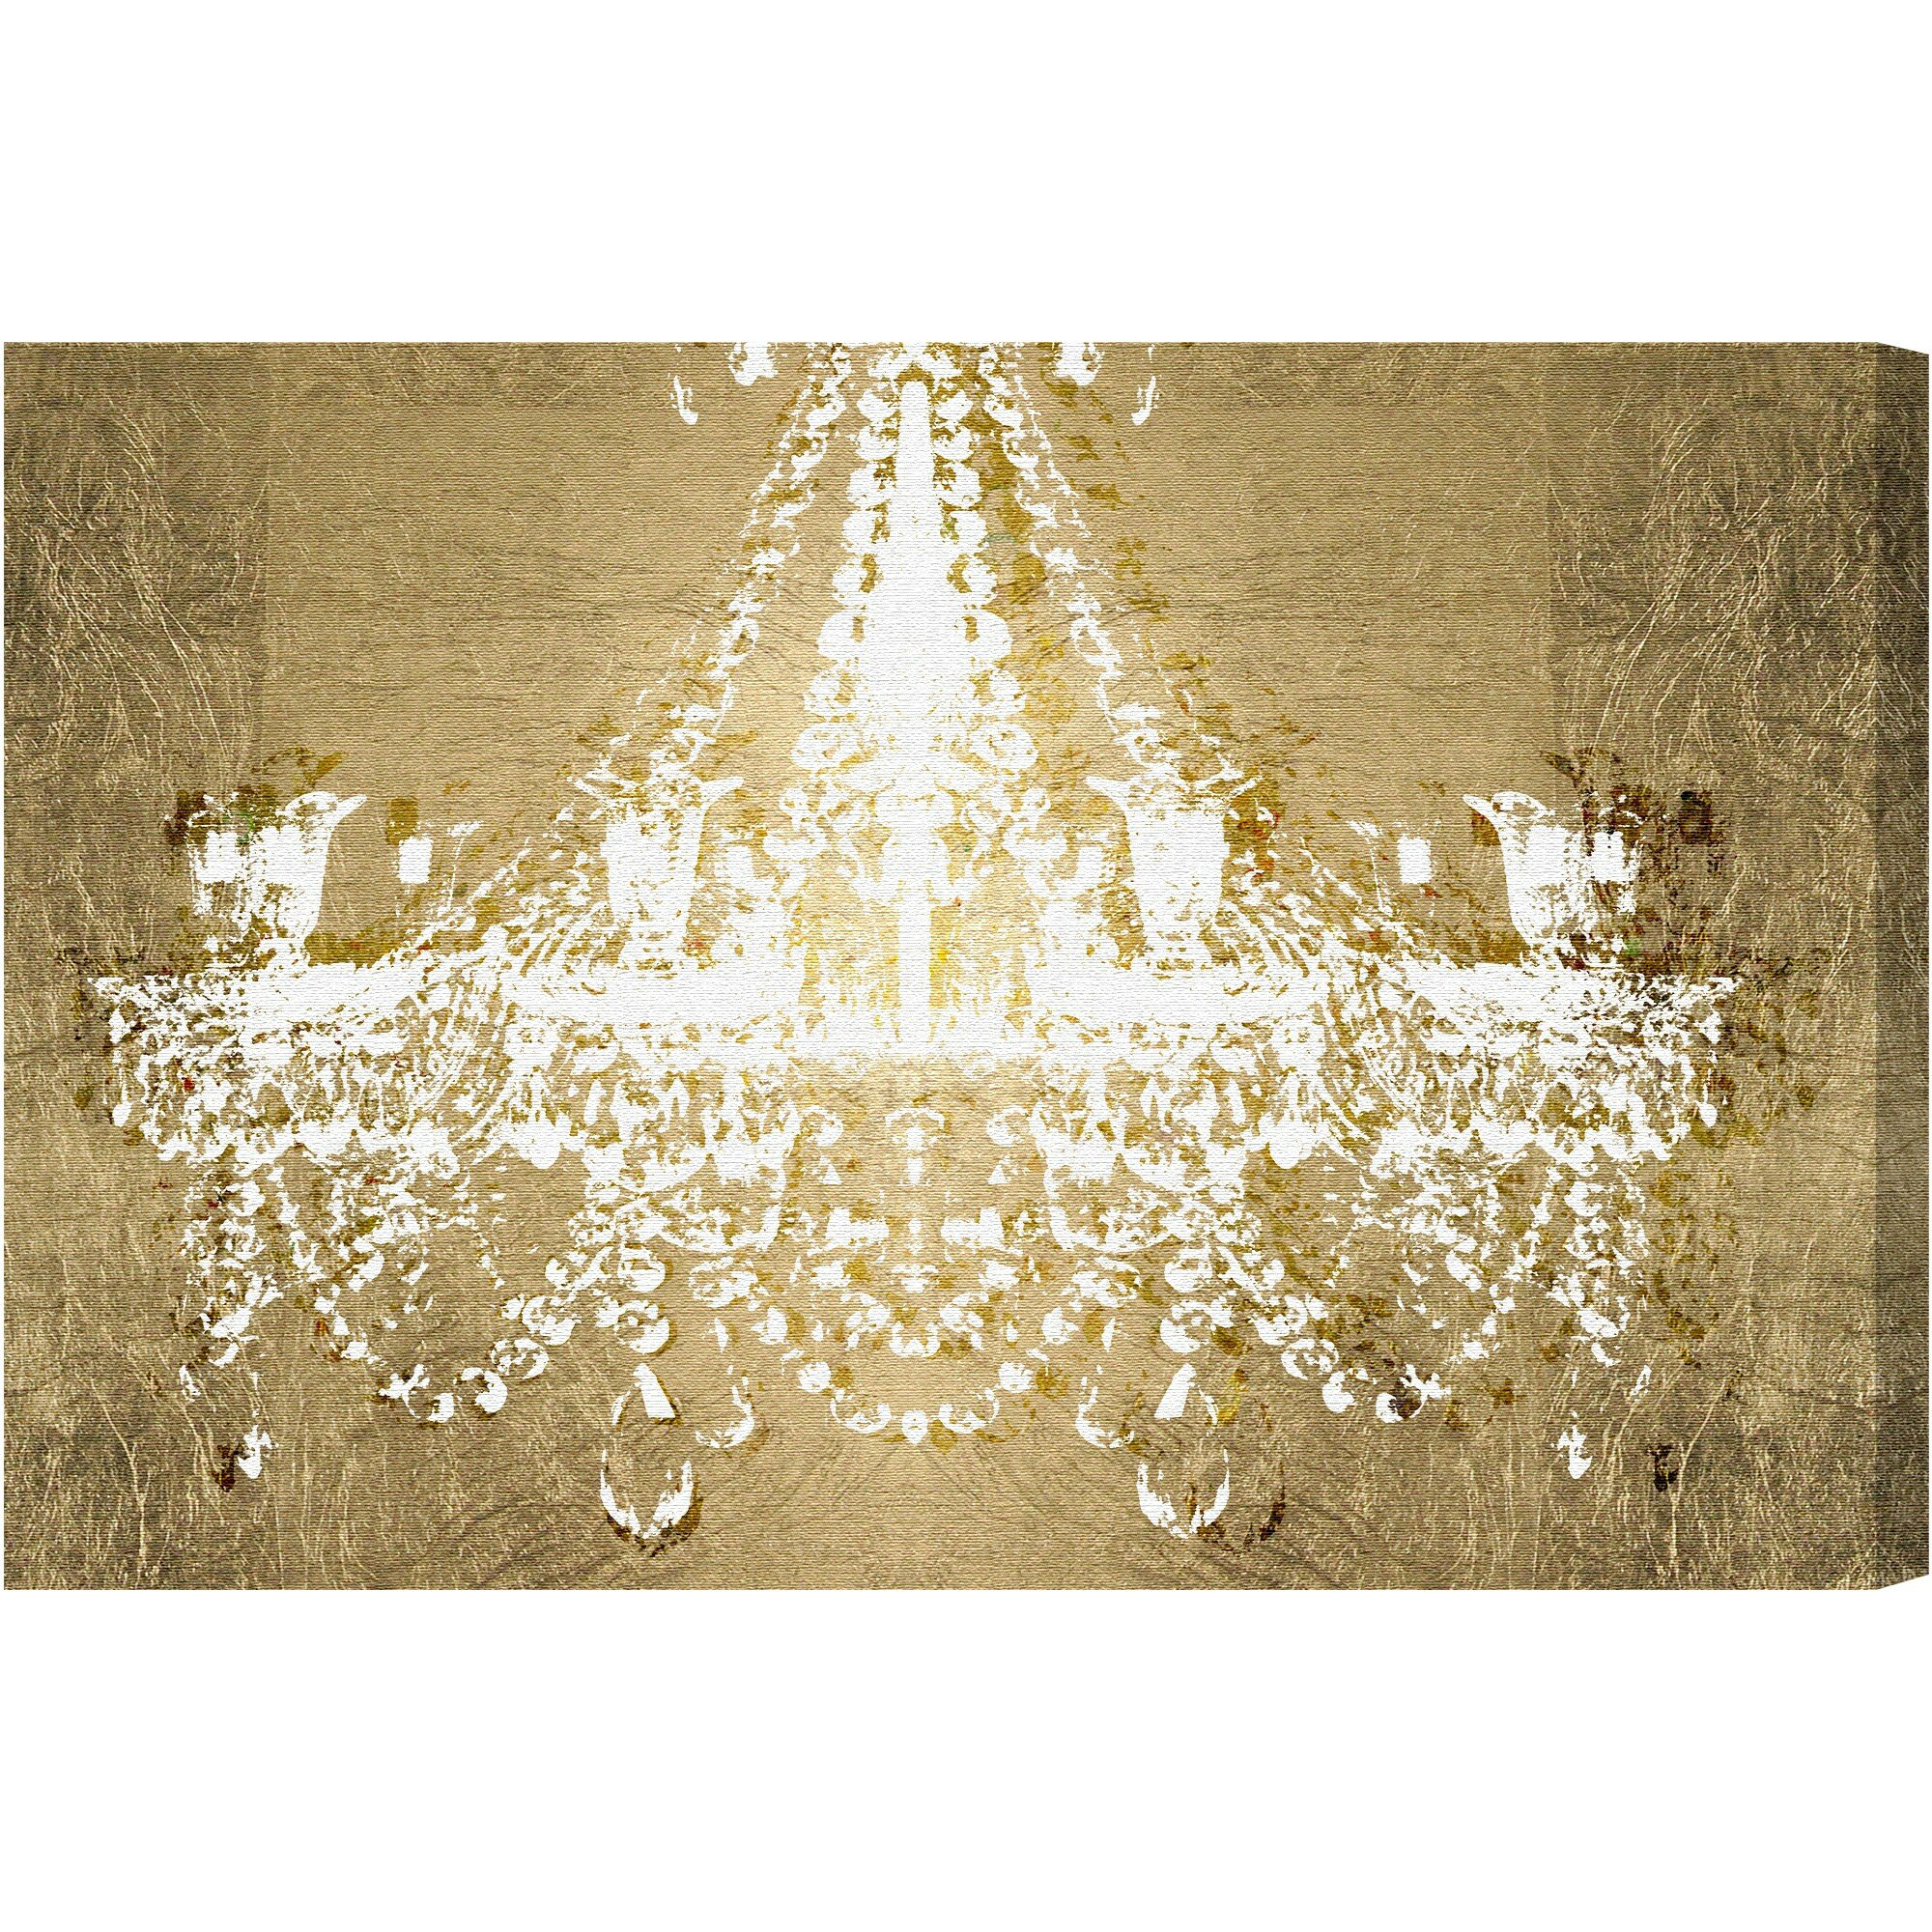 barovier lights with for f chandeliers chandelier sale id art glass clear master deco ercole furniture pendant brass at blown fittings lighting